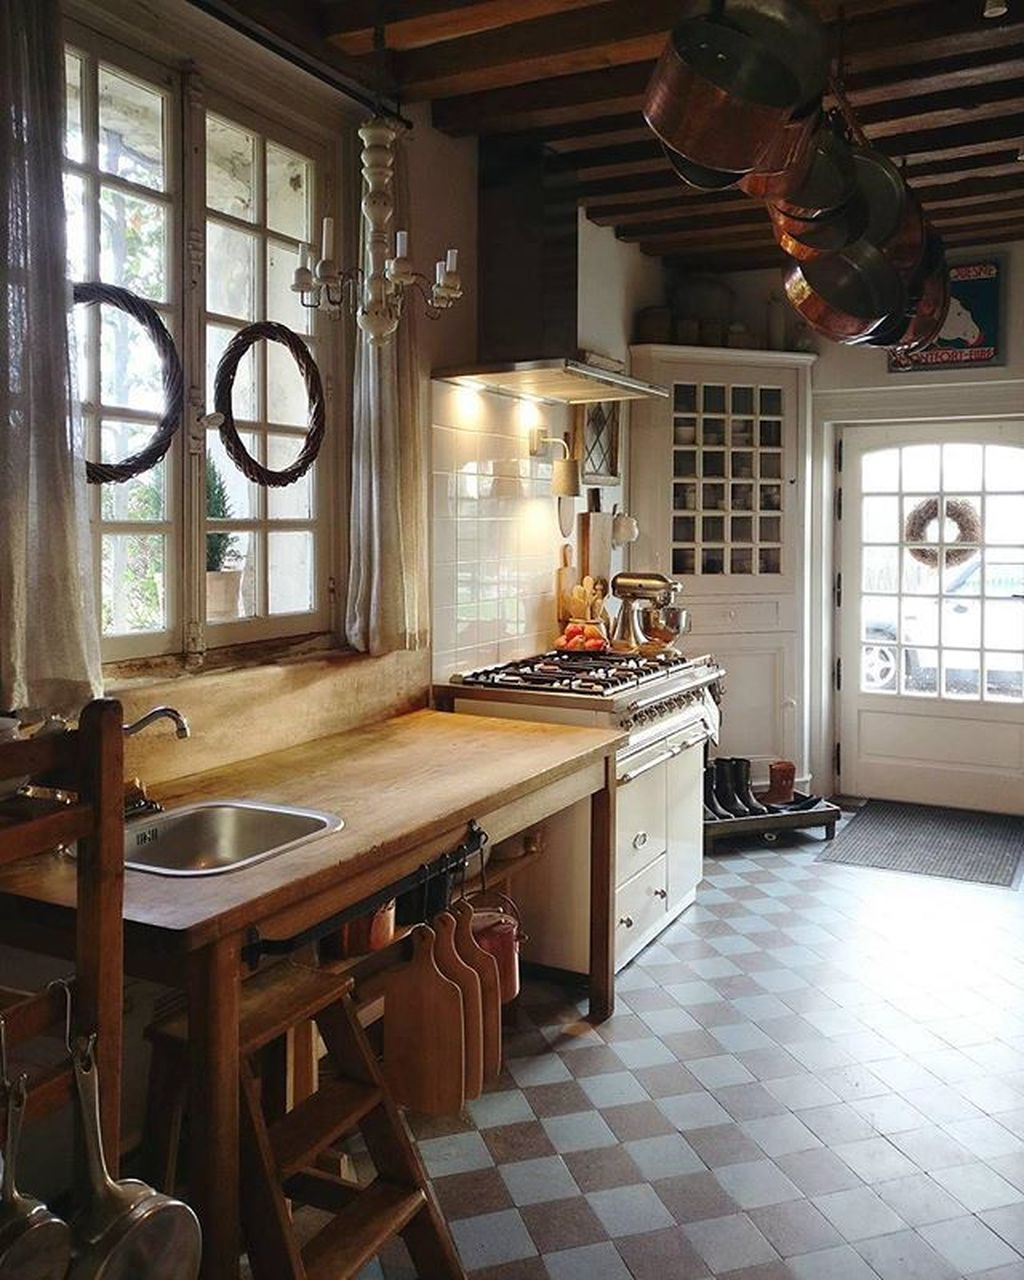 Country Style Kitchens 2013 Decorating Ideas: Pin By Trend4homy On Kitchen Design Ideas In 2019